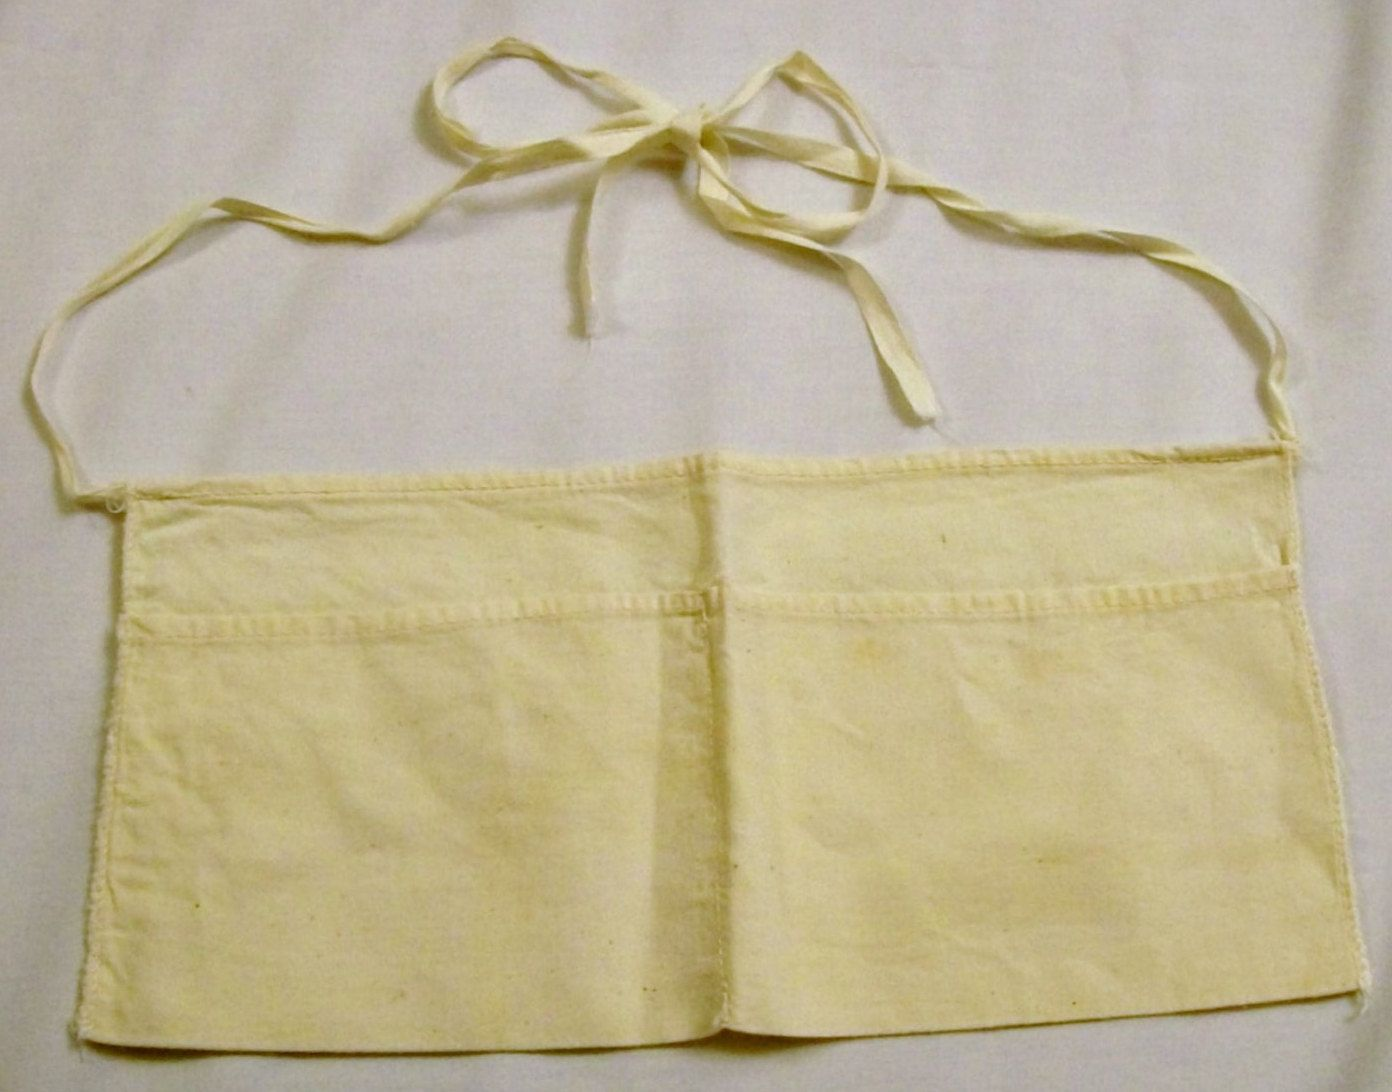 White apron in store - Vintage Nail Pouch Plain White Nail Apron Hardware Store Apron By Vintagepluscrafts On Etsy